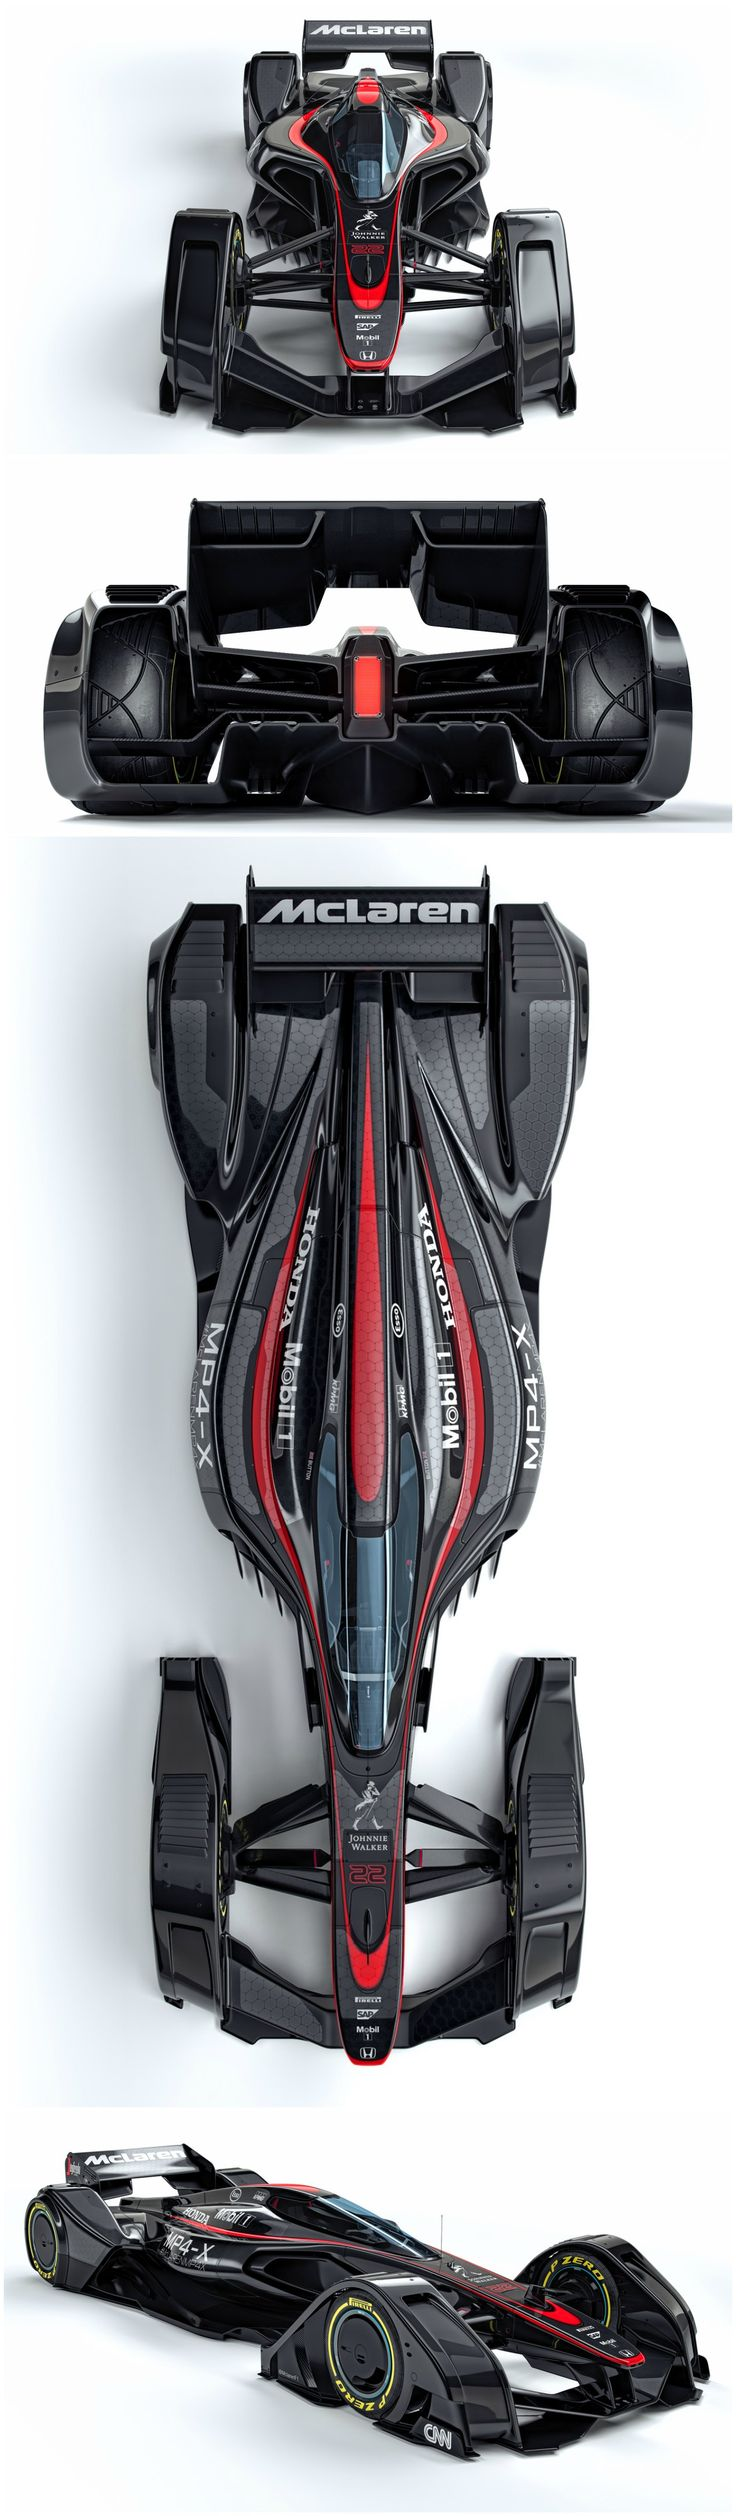 the-mclaren-mp4-x-mclarens-conceptual-vision-for-the-future-of-motorsport-te.jpg